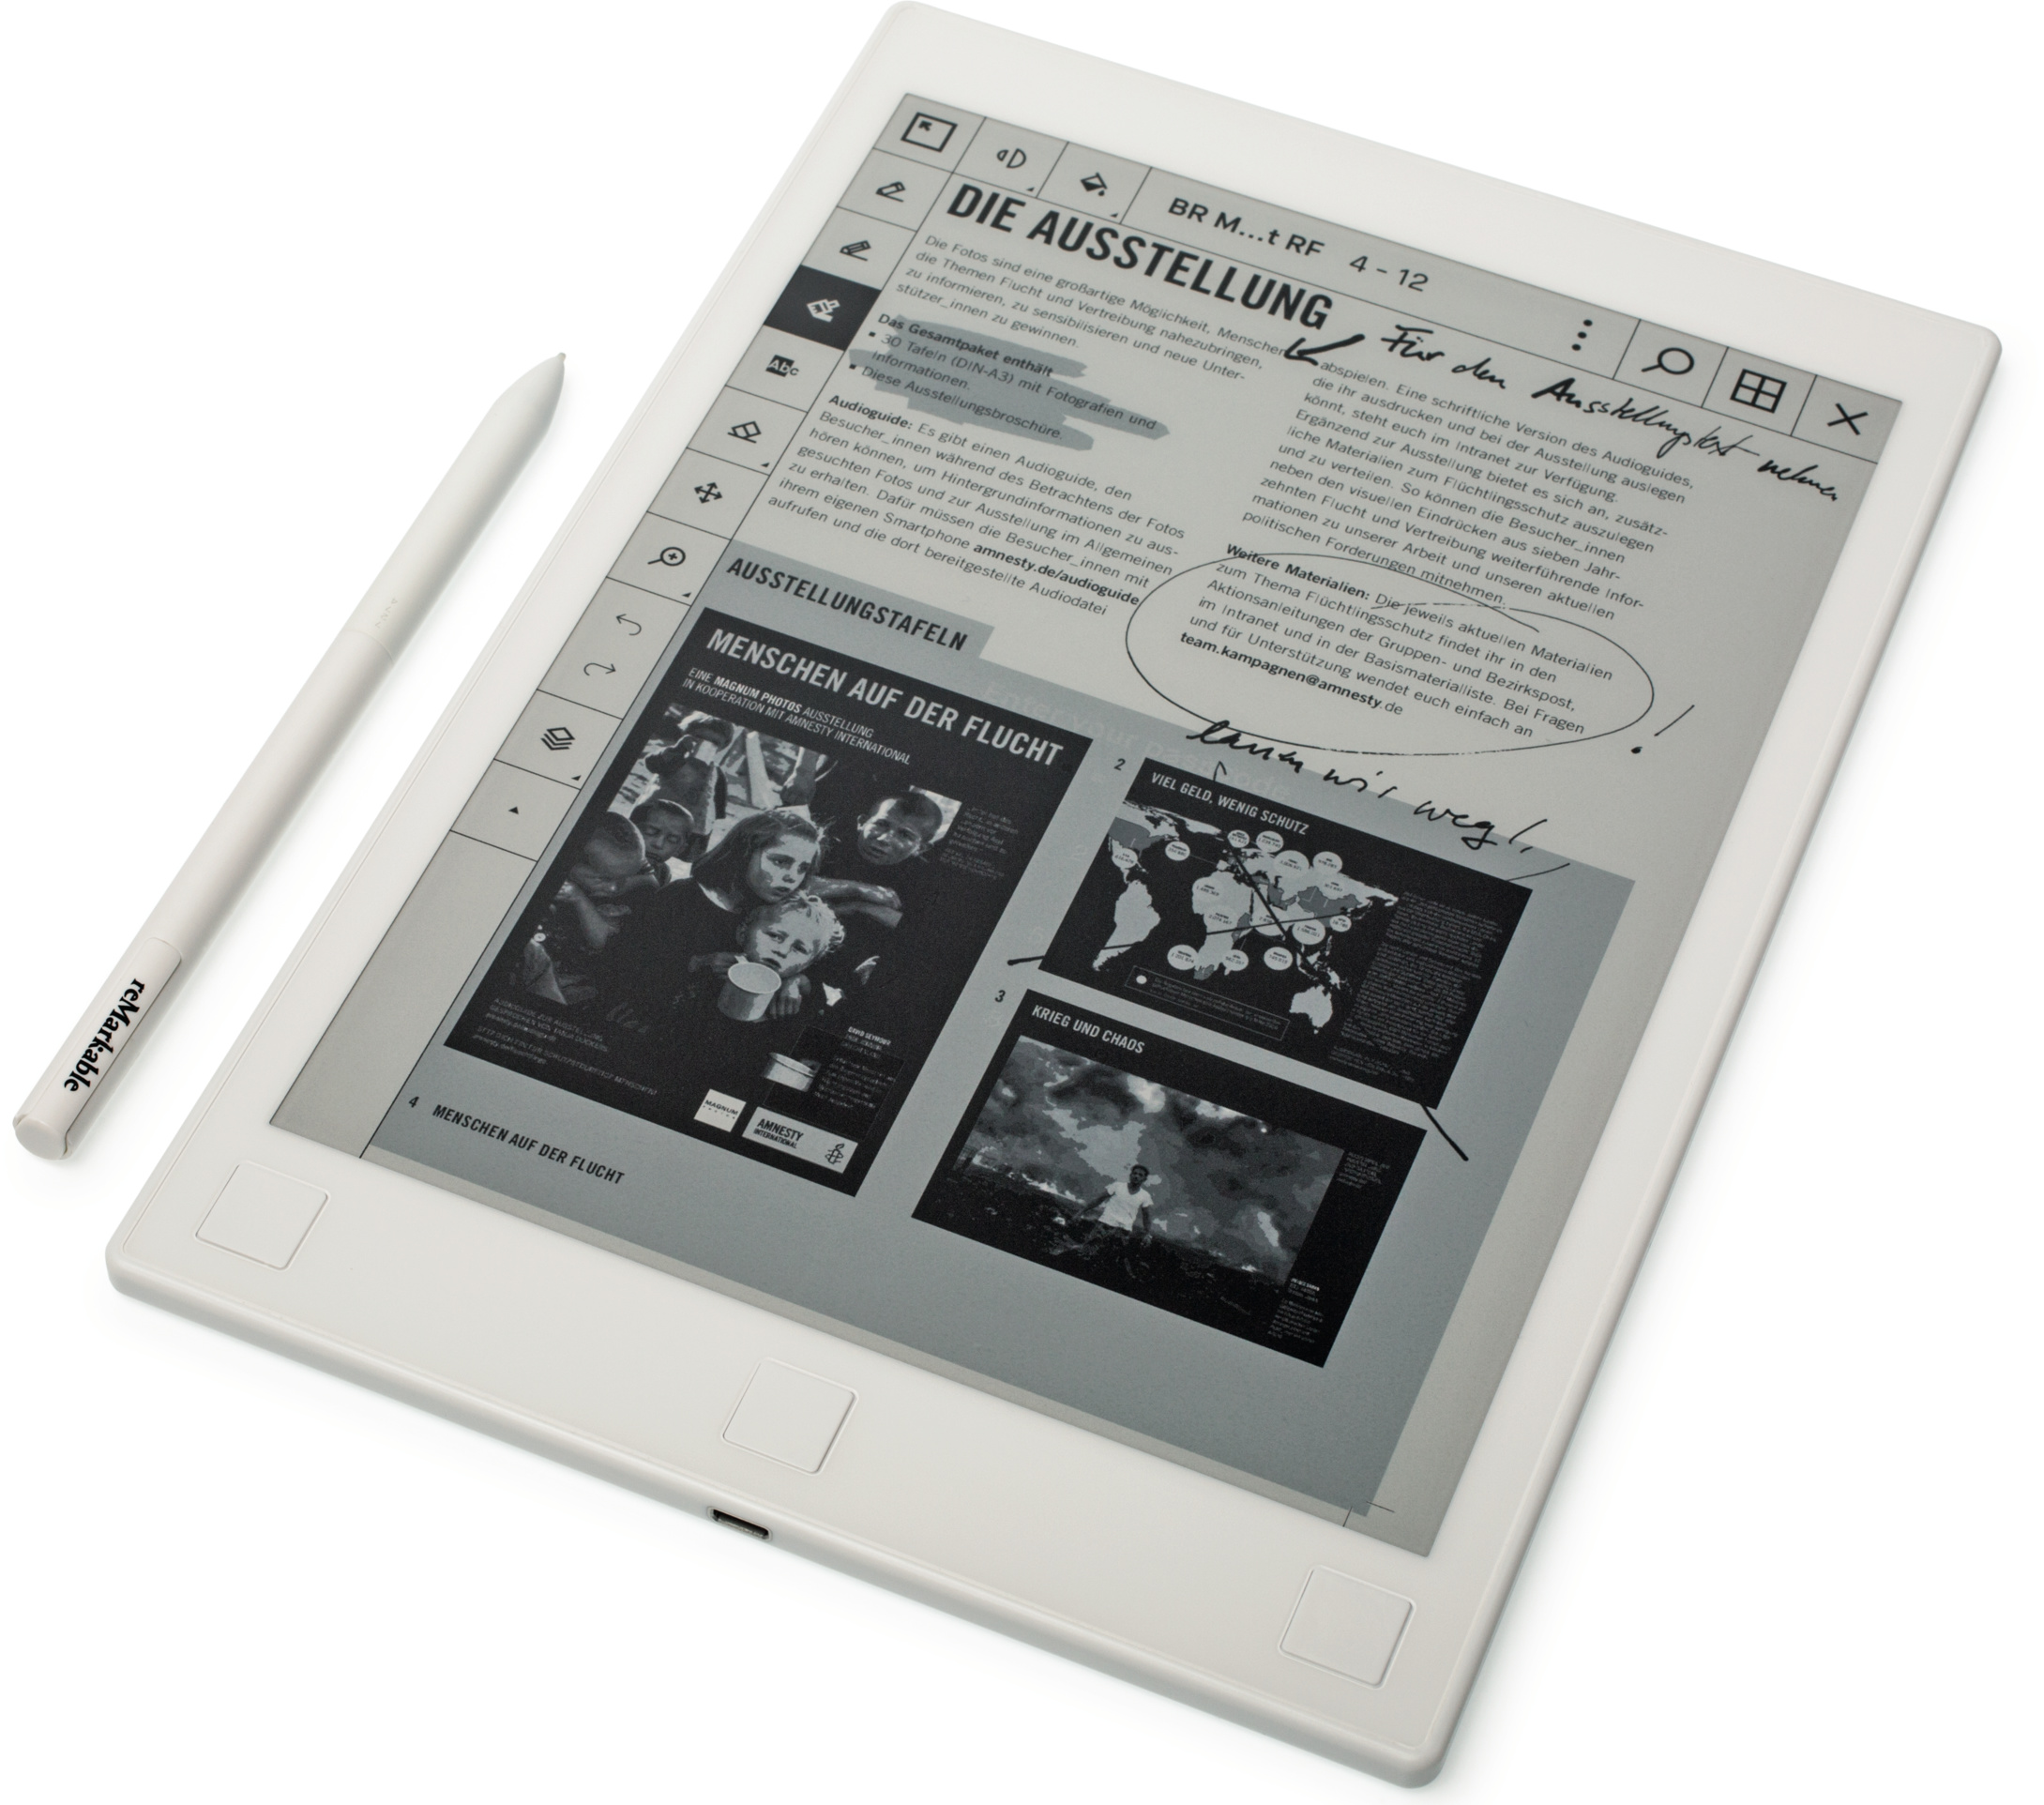 Der Tablet Digitaler Notizblock C T Heise Magazine